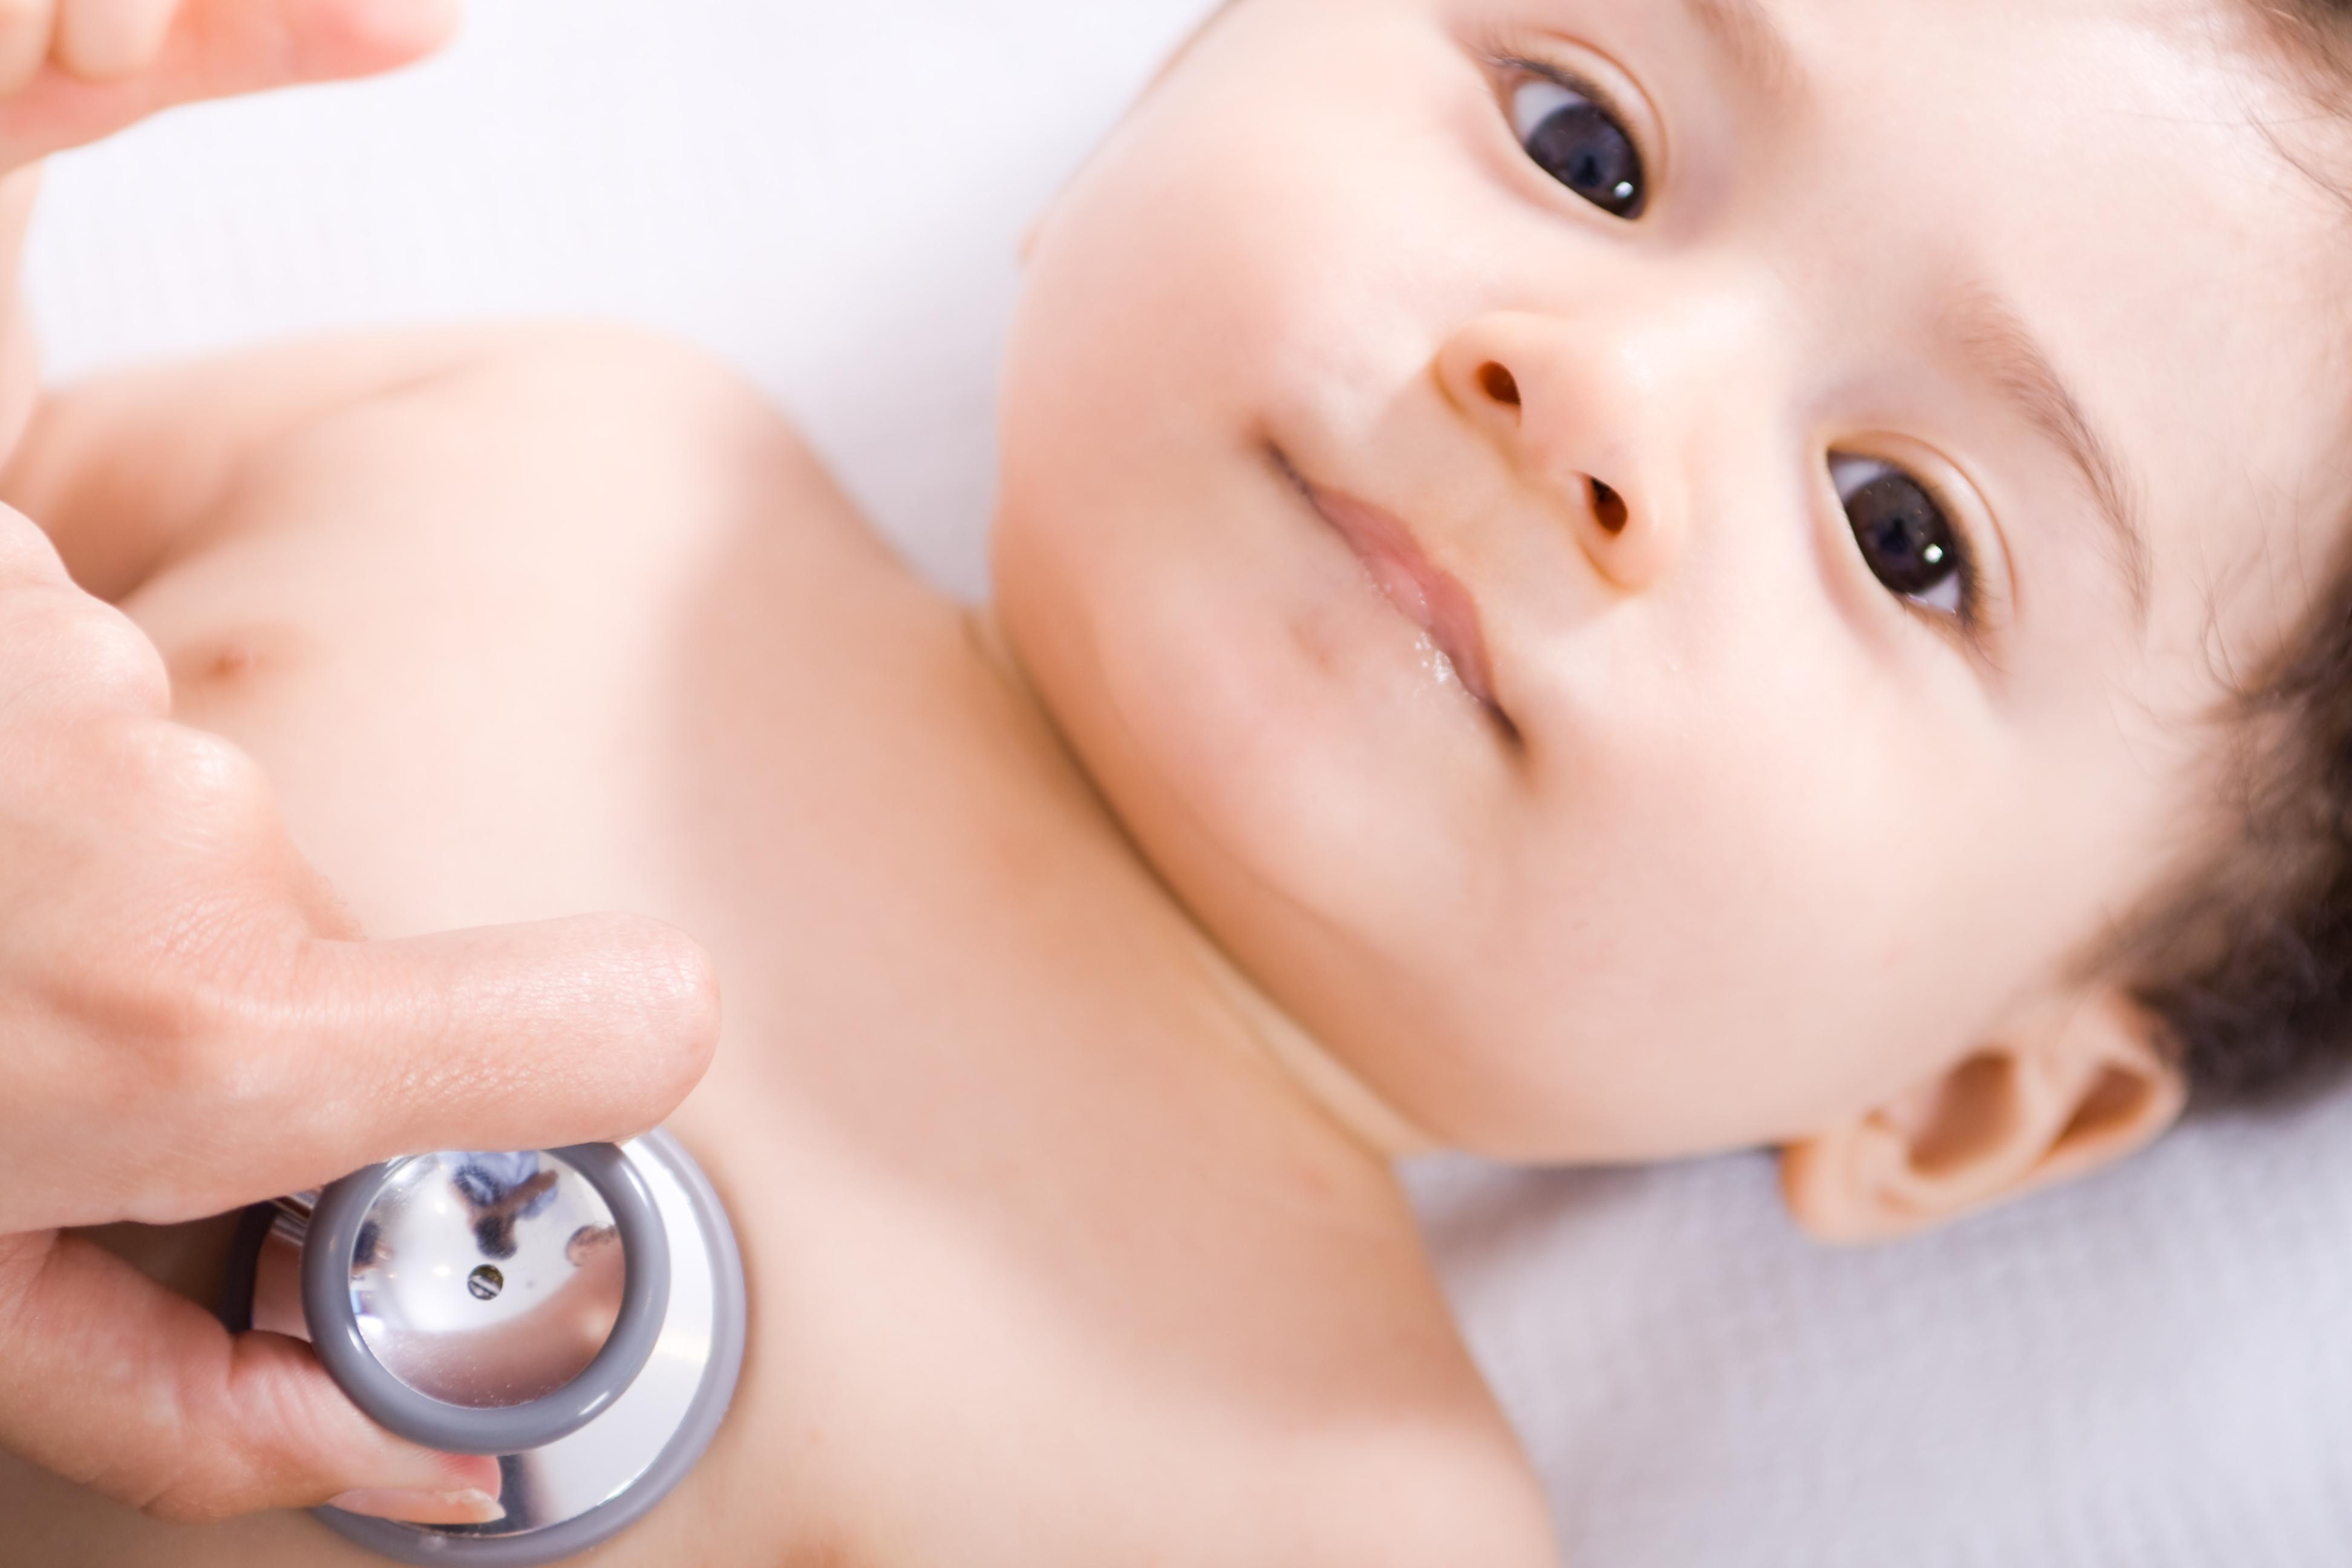 High-quality hospitals deliver lowest-cost care for congenital heart surgery patients